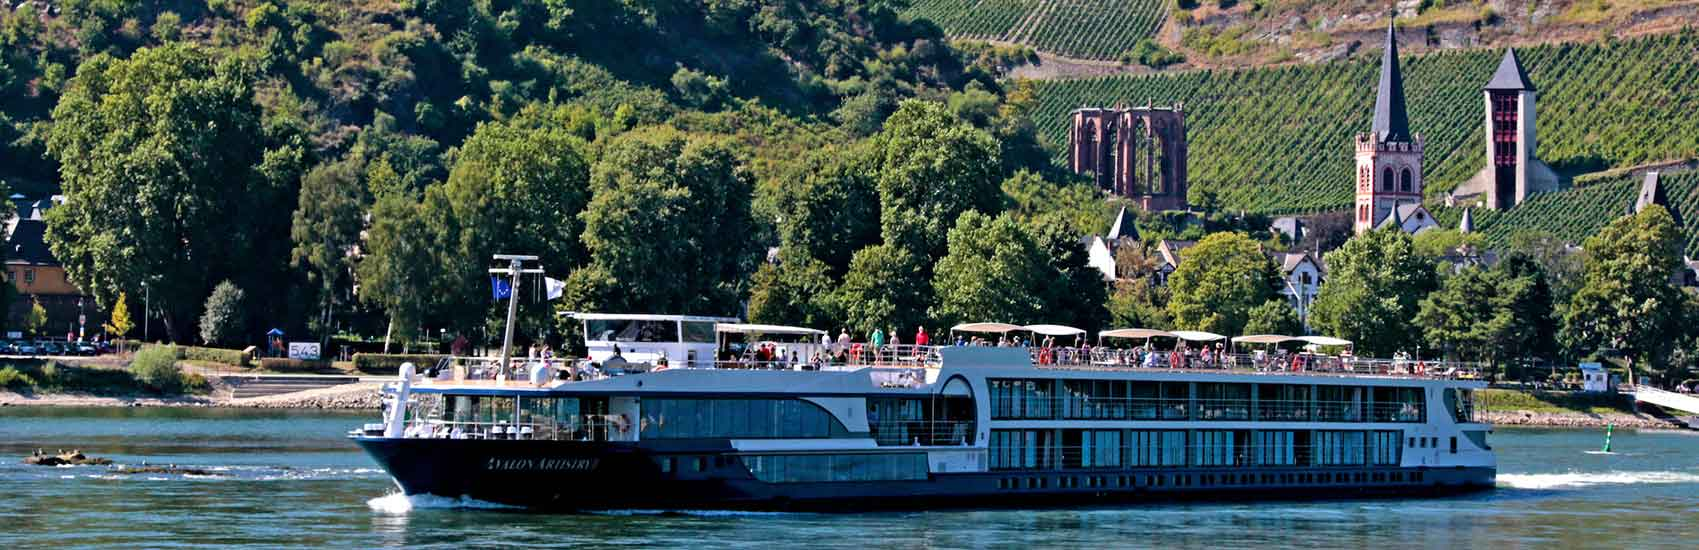 Exclusive Virtuoso Offer with AmaWaterways